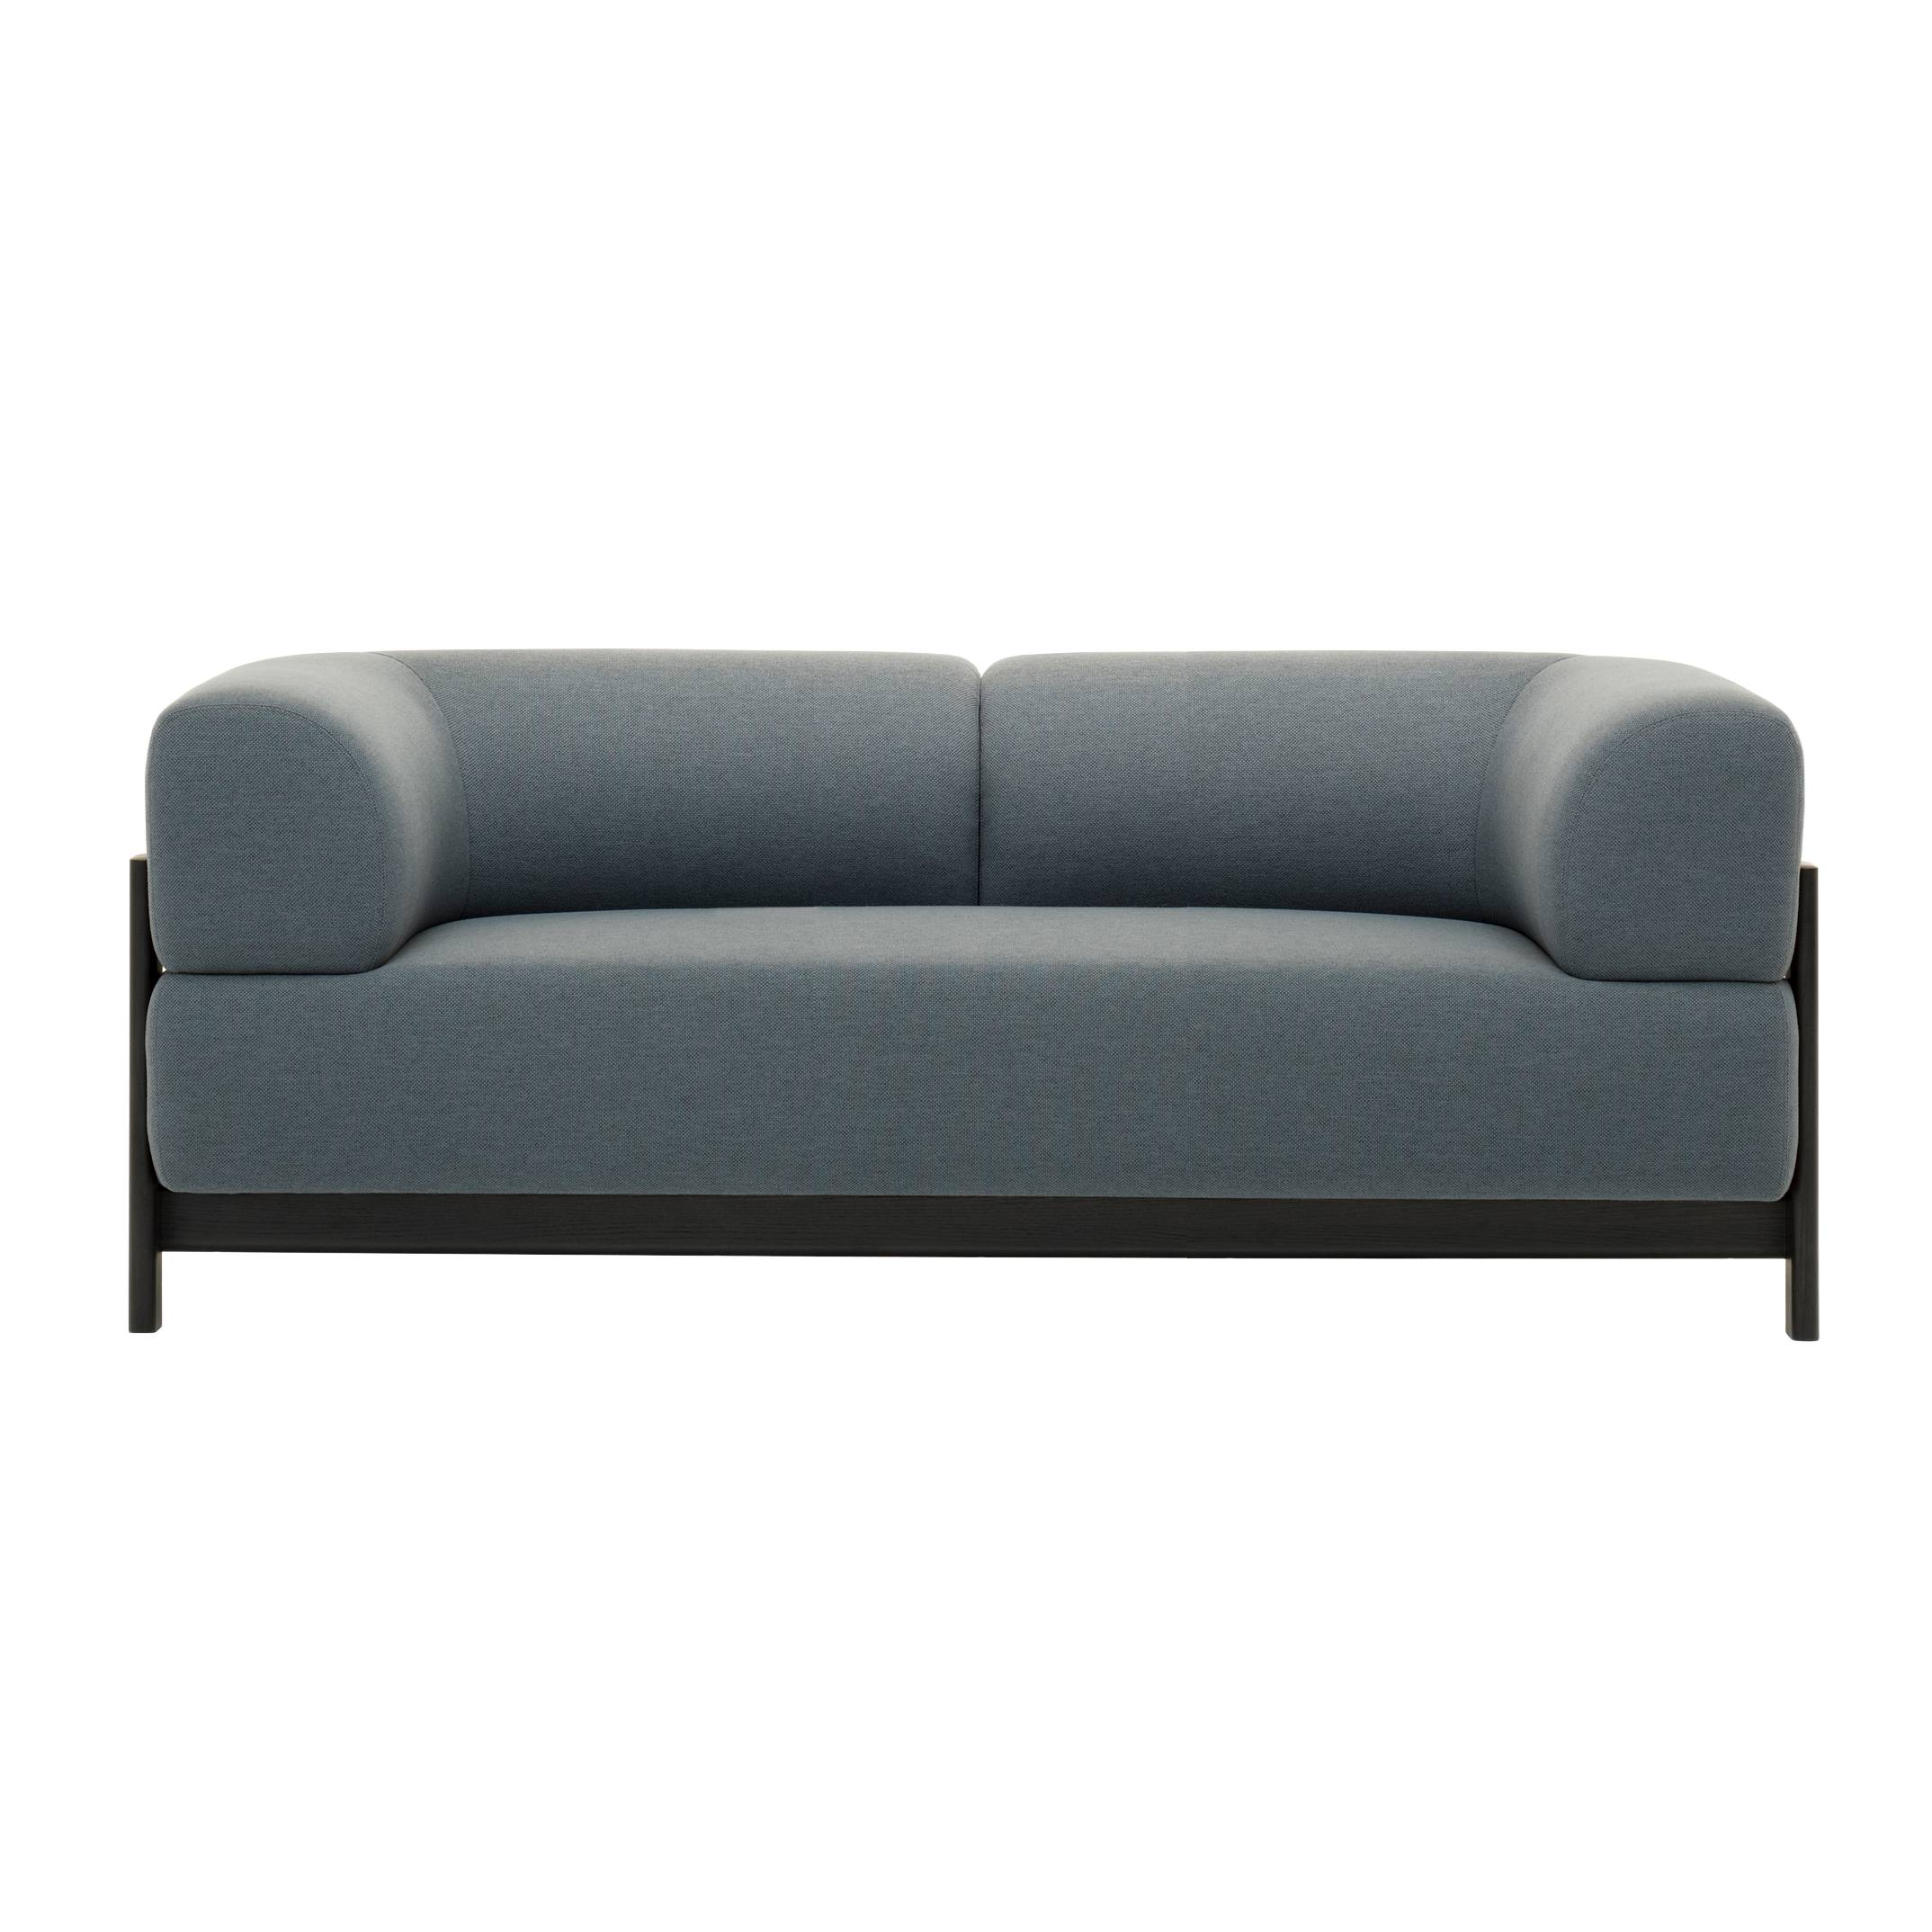 Elephant 2 Seater Sofa: Black